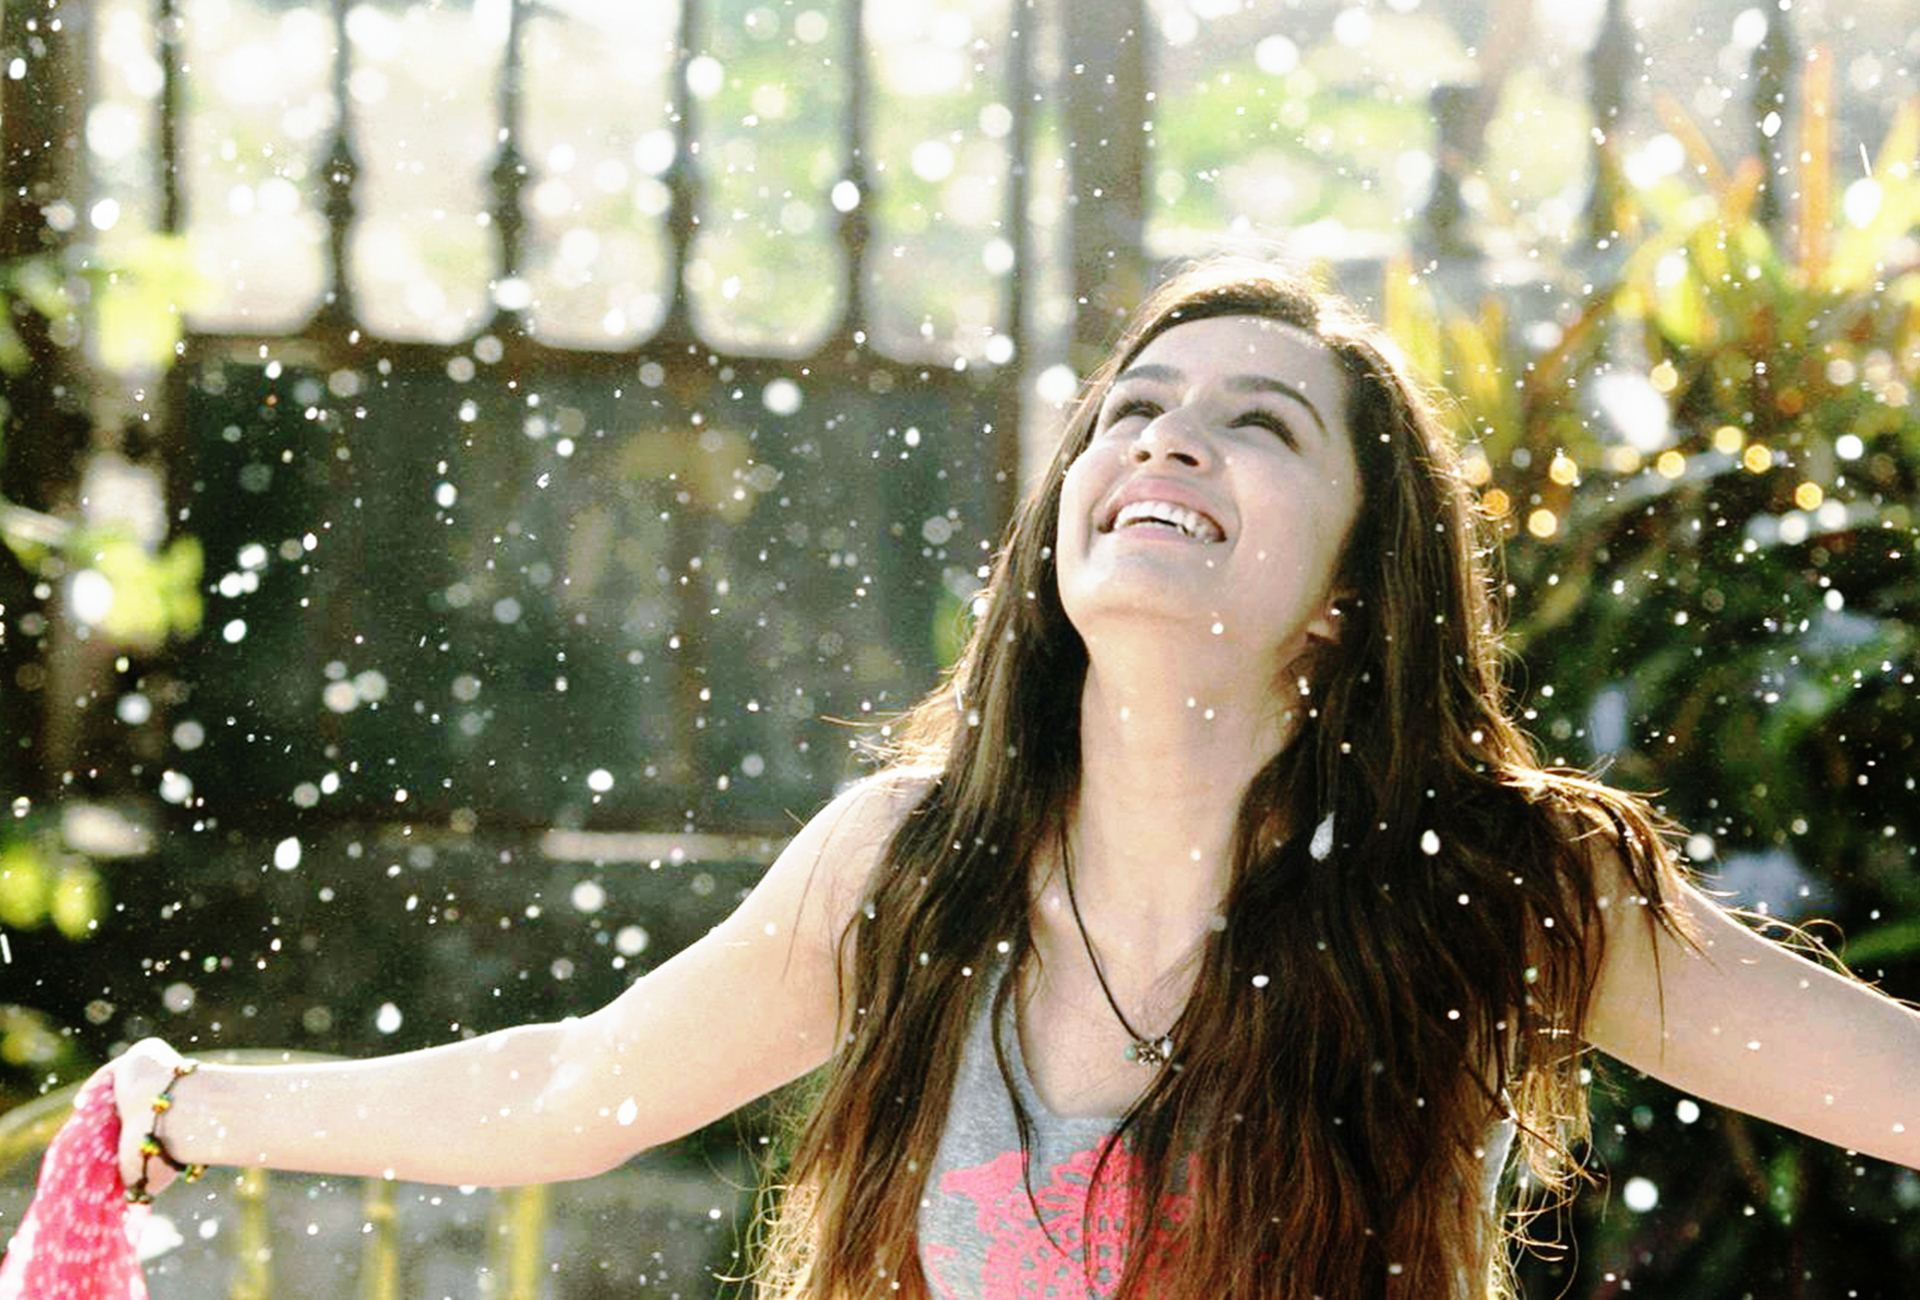 Cute Smile Shraddha Kapoor in Ek Villain Wallpaper1 1920x1300